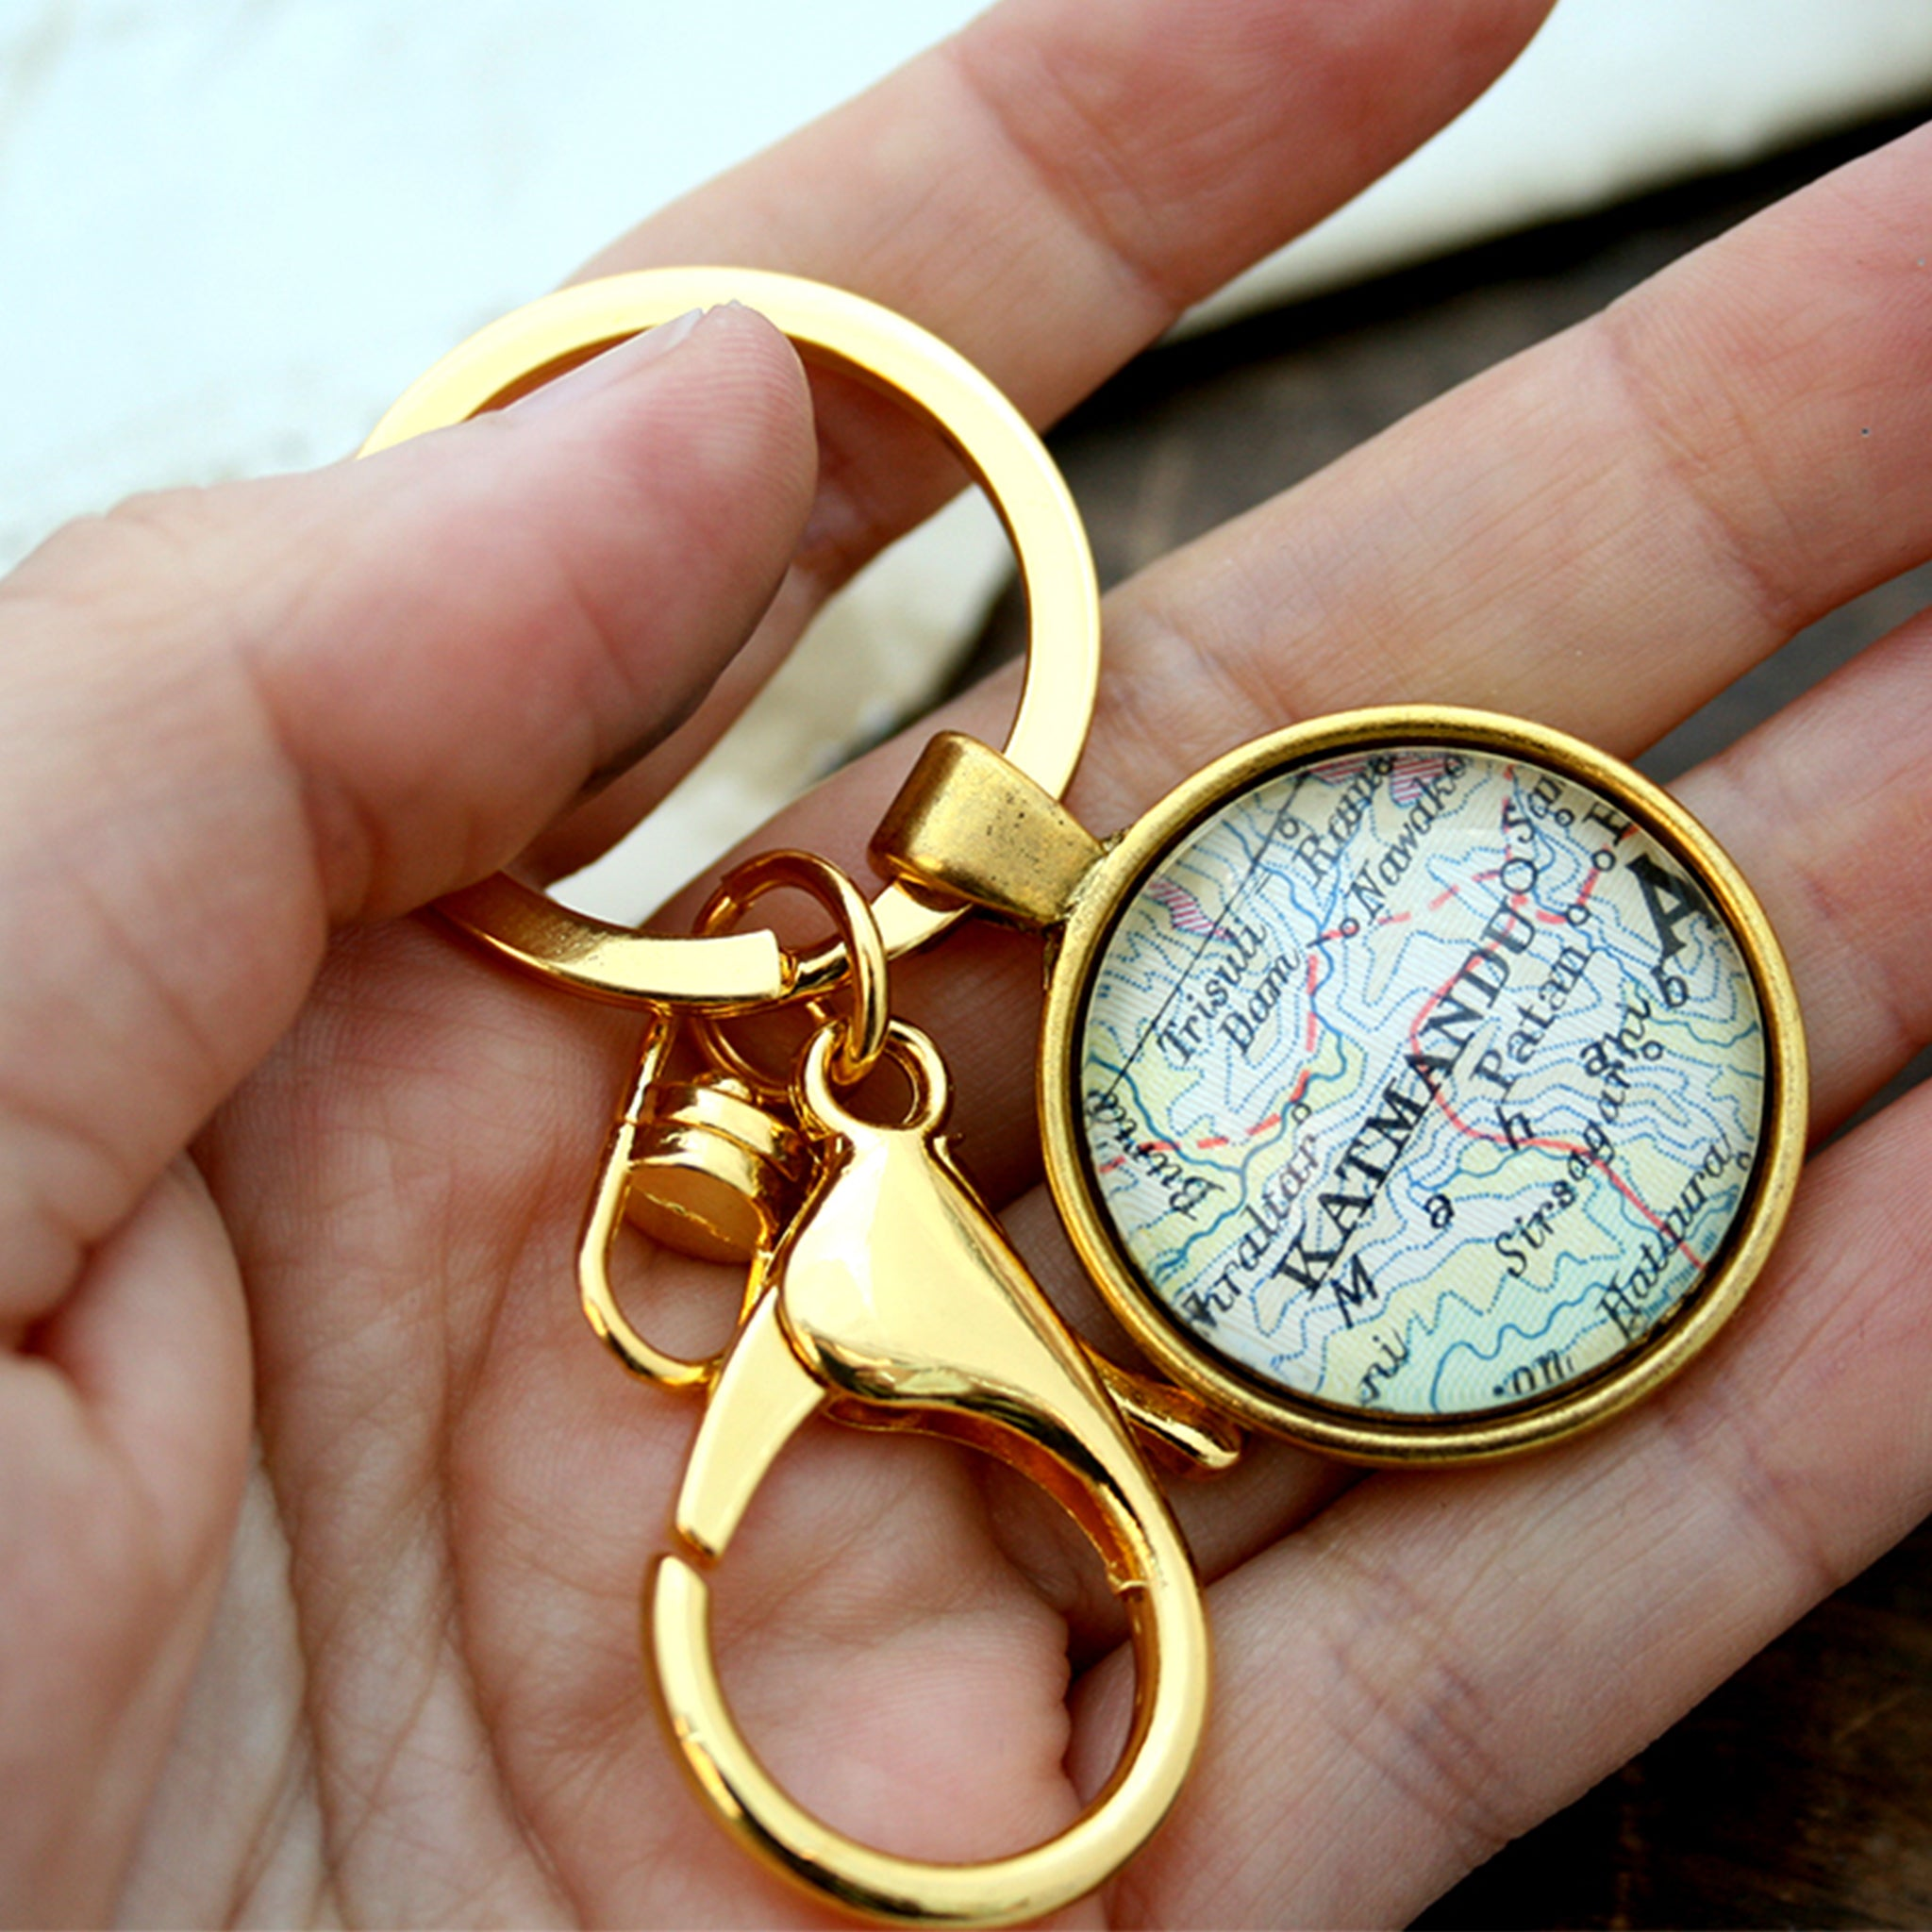 Hold in hand Personalised keyring in gold color featuring map of Kathmandu